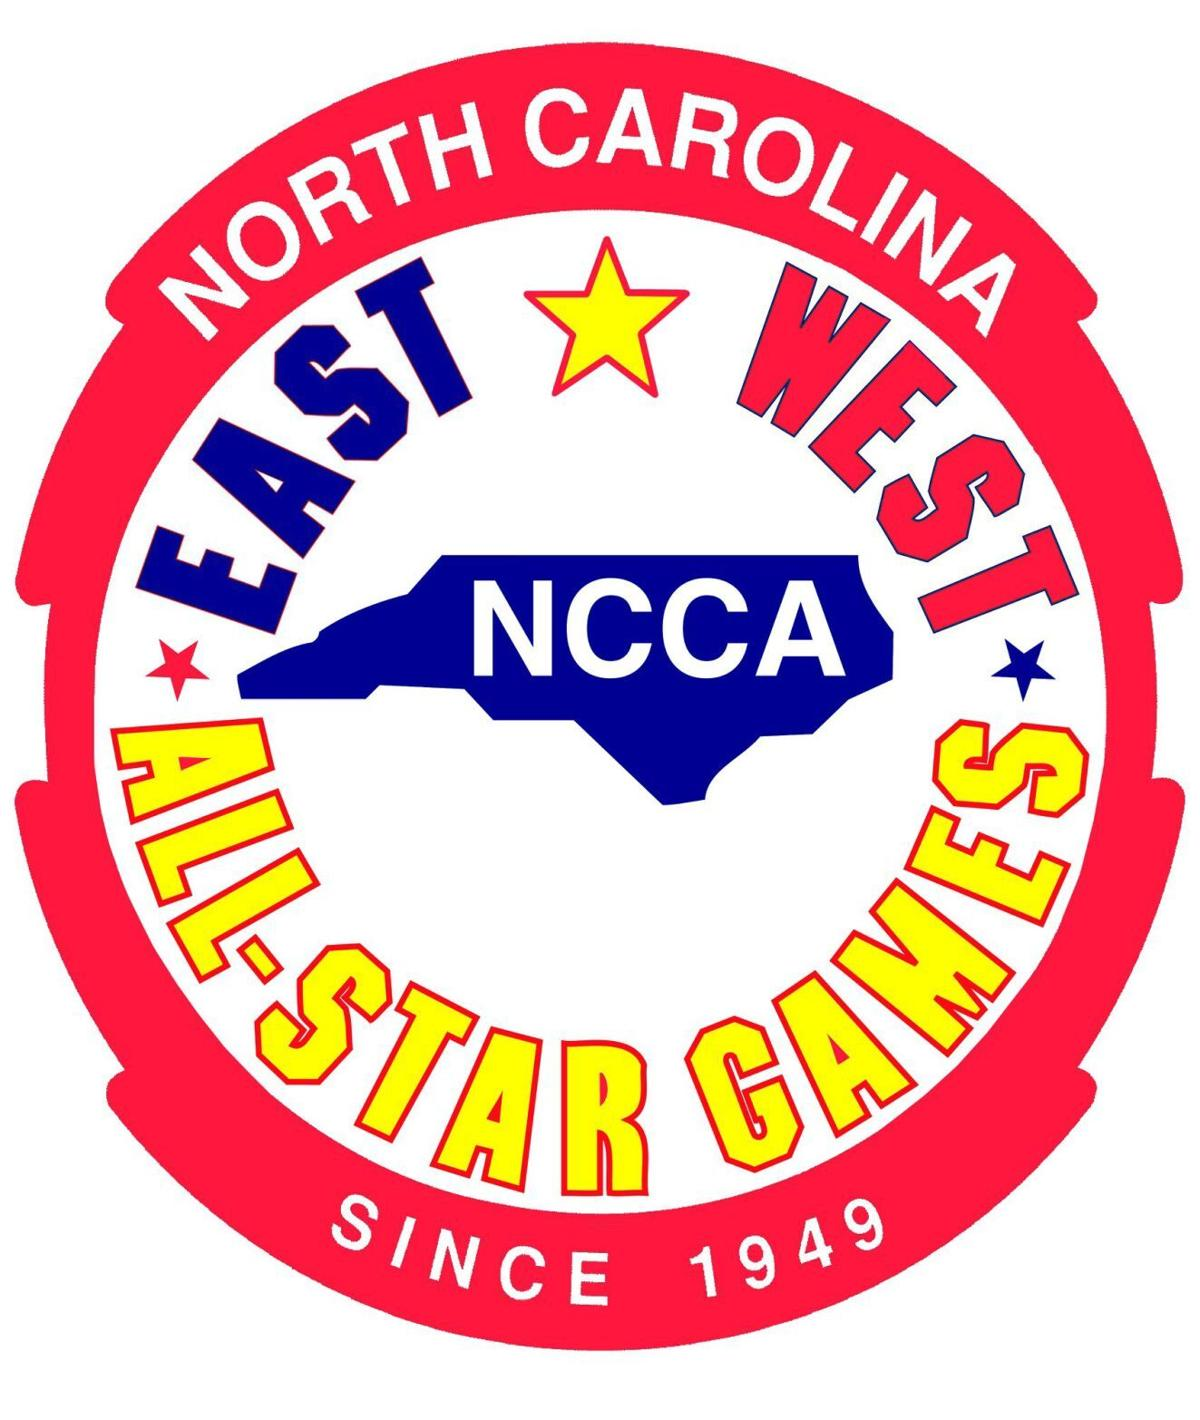 East West All-Star Games